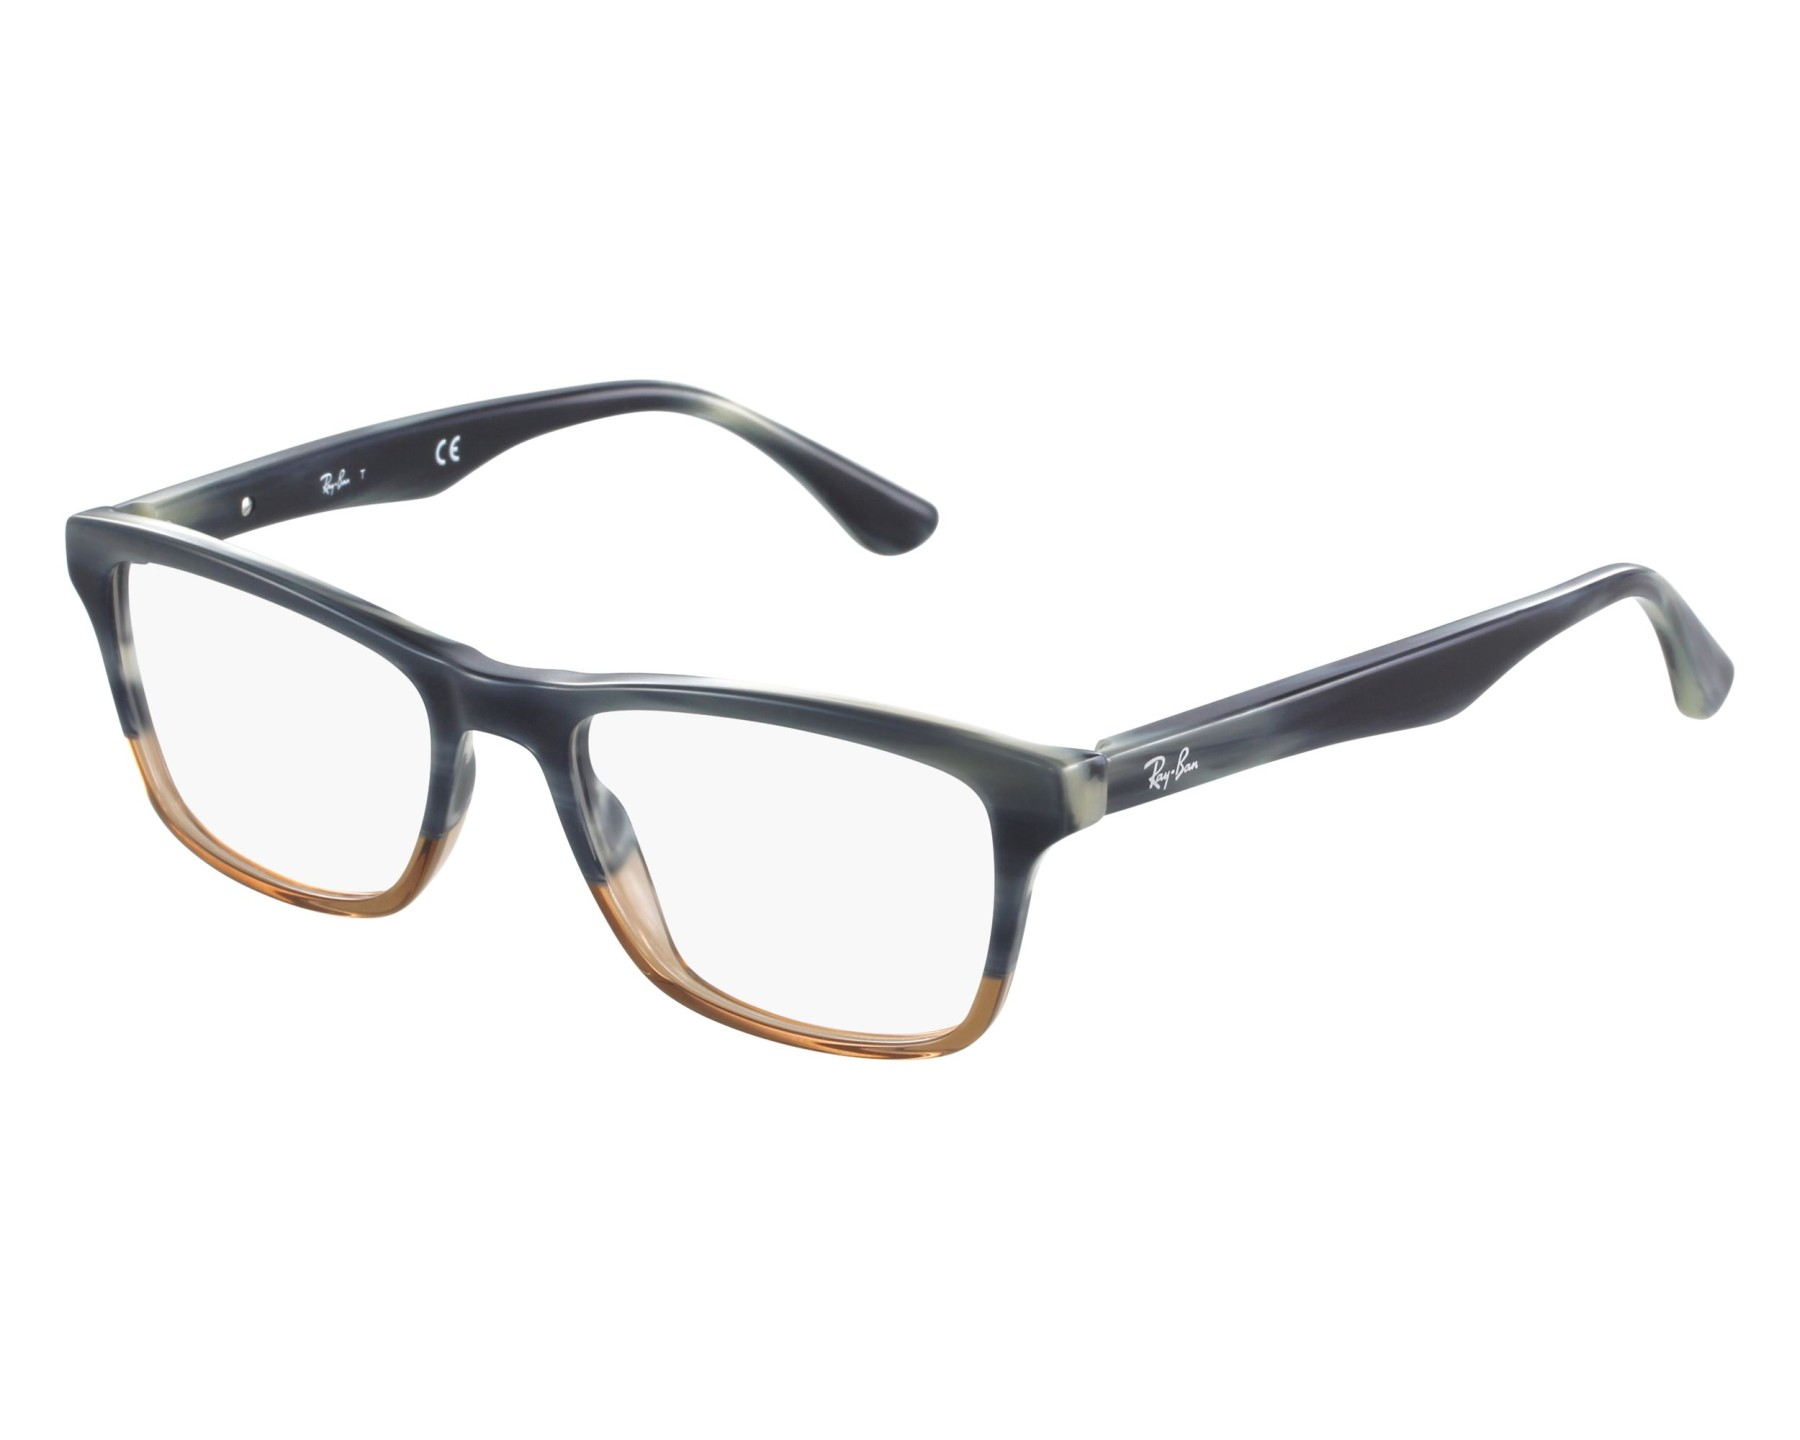 6e111a32b7 eyeglasses Ray-Ban RX-5279 5543 53-18 Blue Brown front view